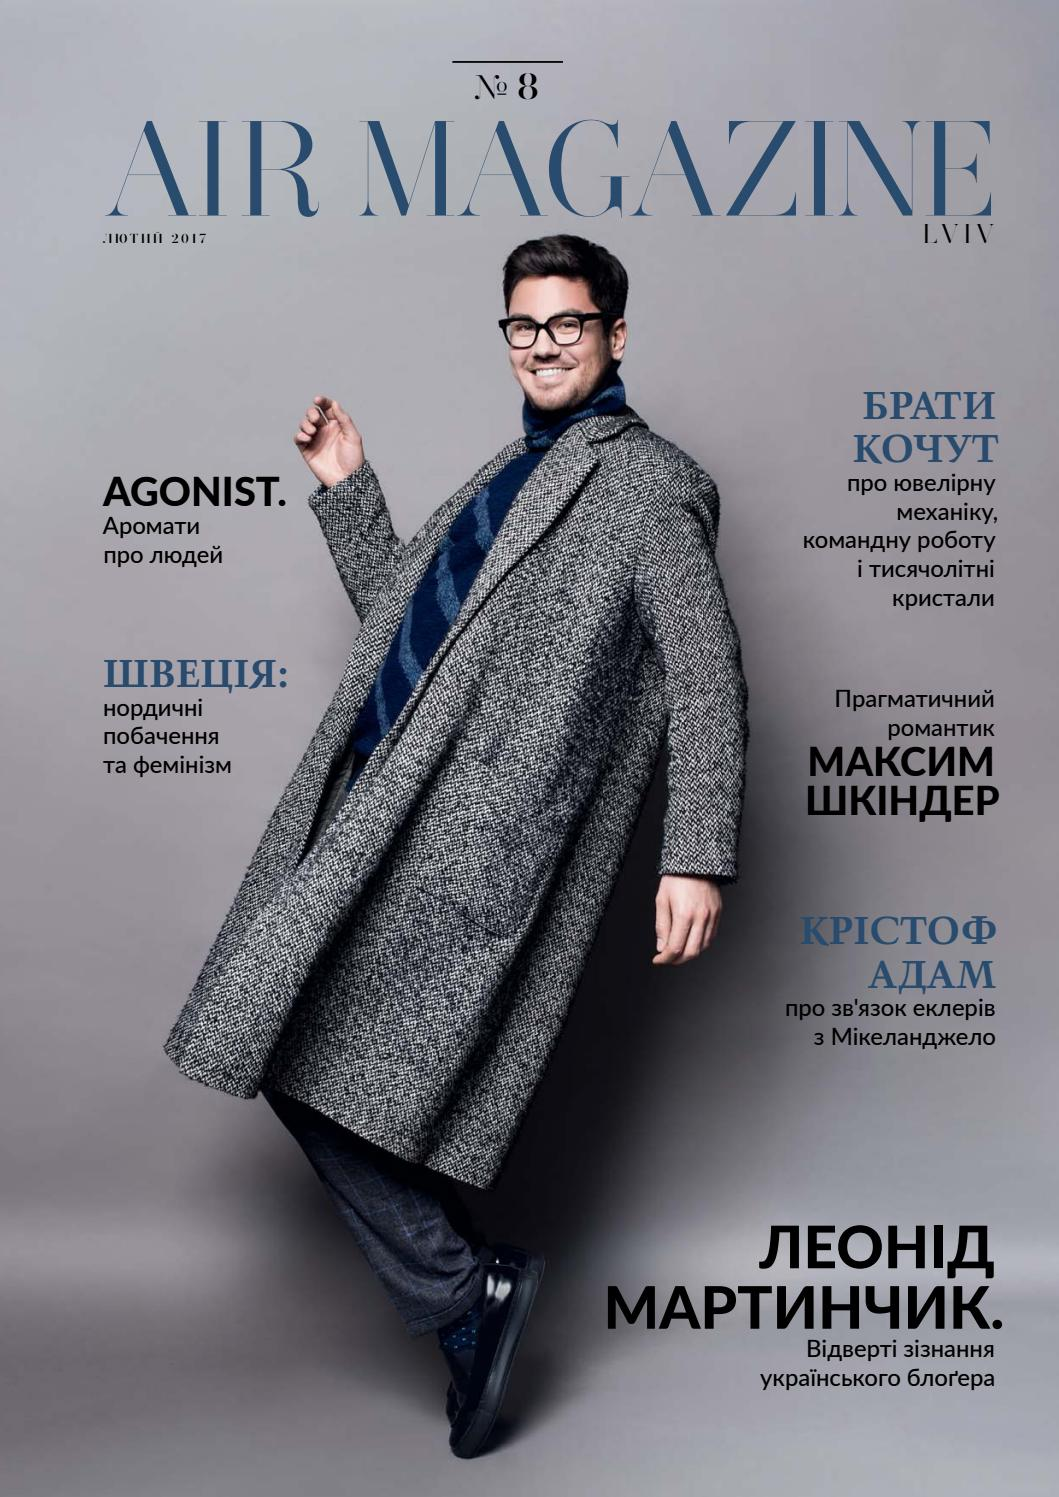 Air mag lviv 16 web by AIR MAGAZINE LVIV - issuu 38675414ac2fb